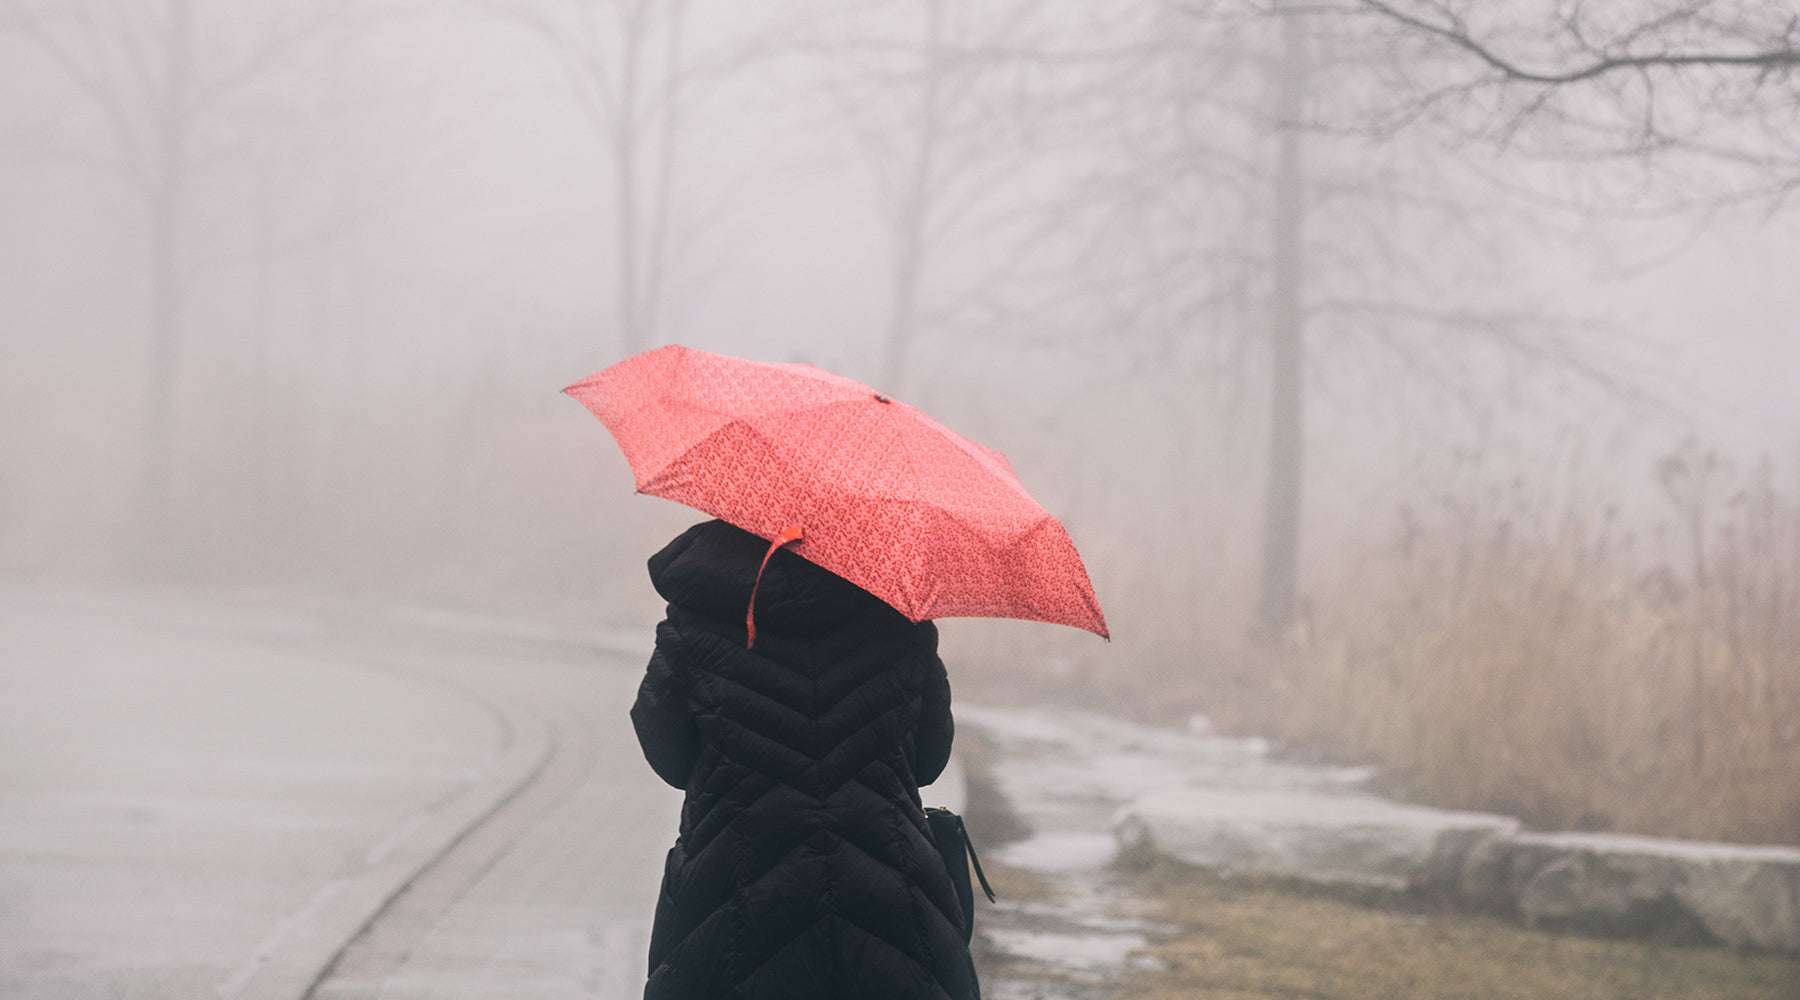 A person wearing a puffy black jacket and holding a red umbrella overhead walks away from the camera in the rain | Nikki Darling Australia